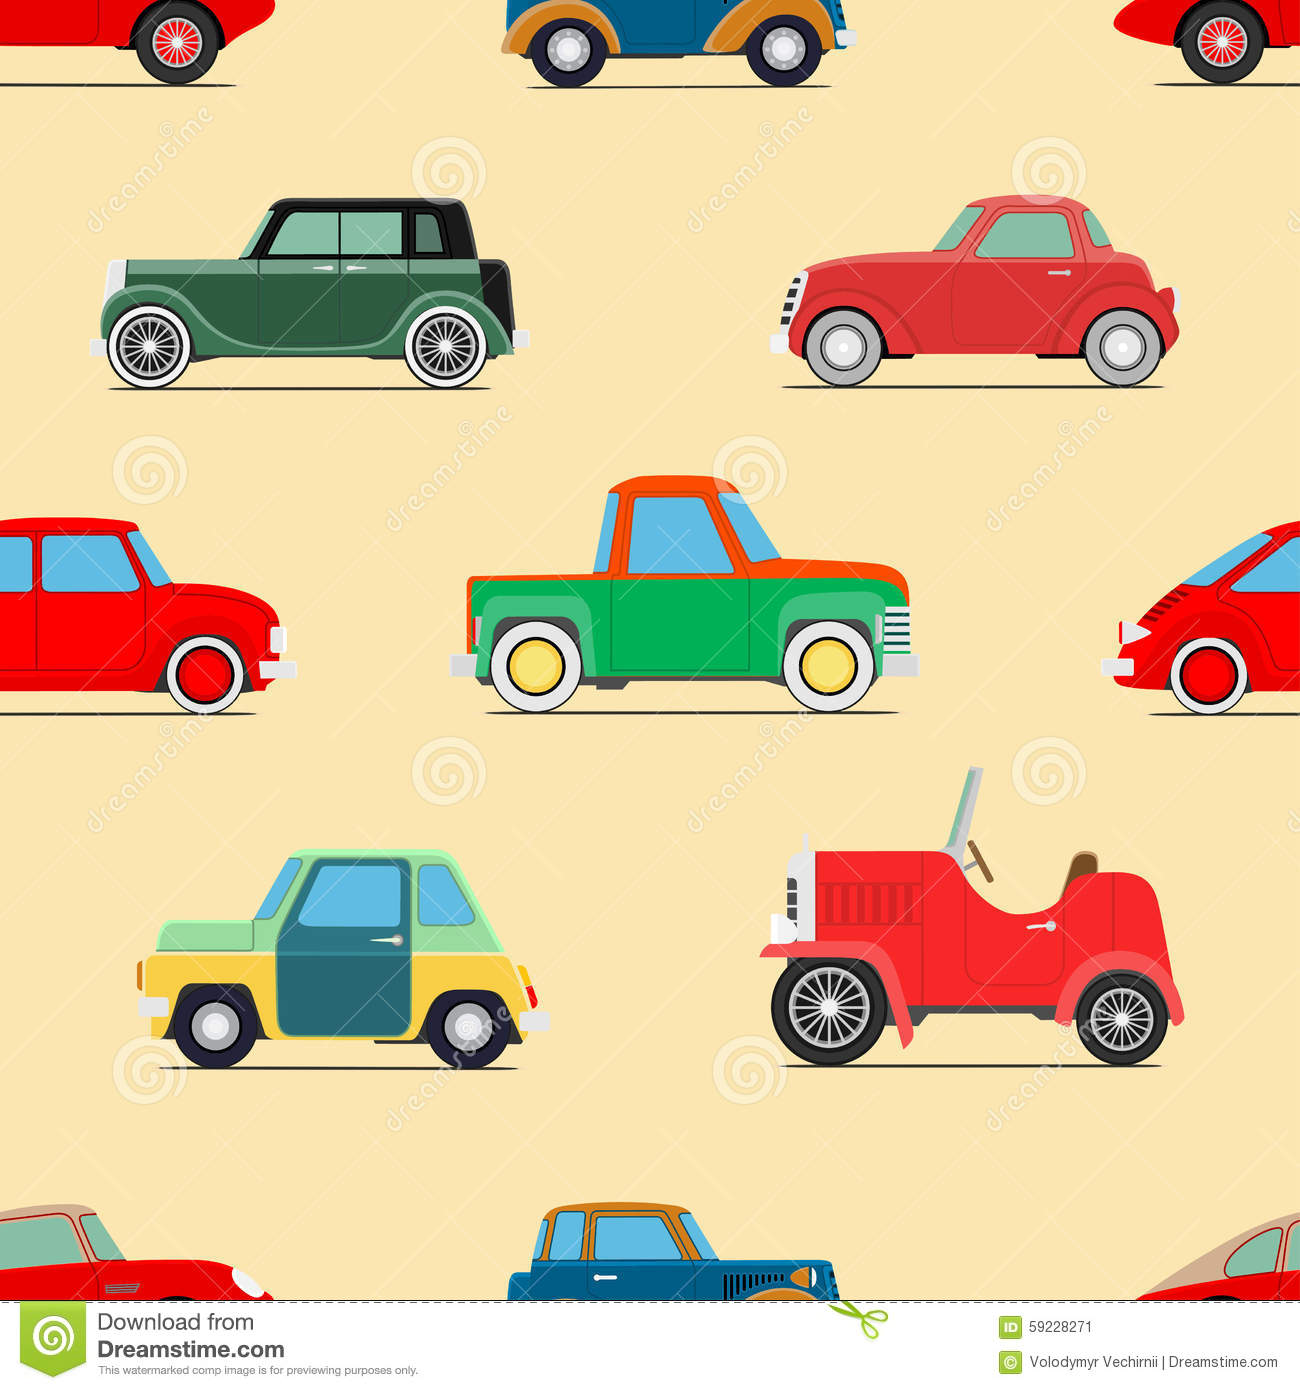 1300x1390 - Wallpaper Cars Cartoon 5